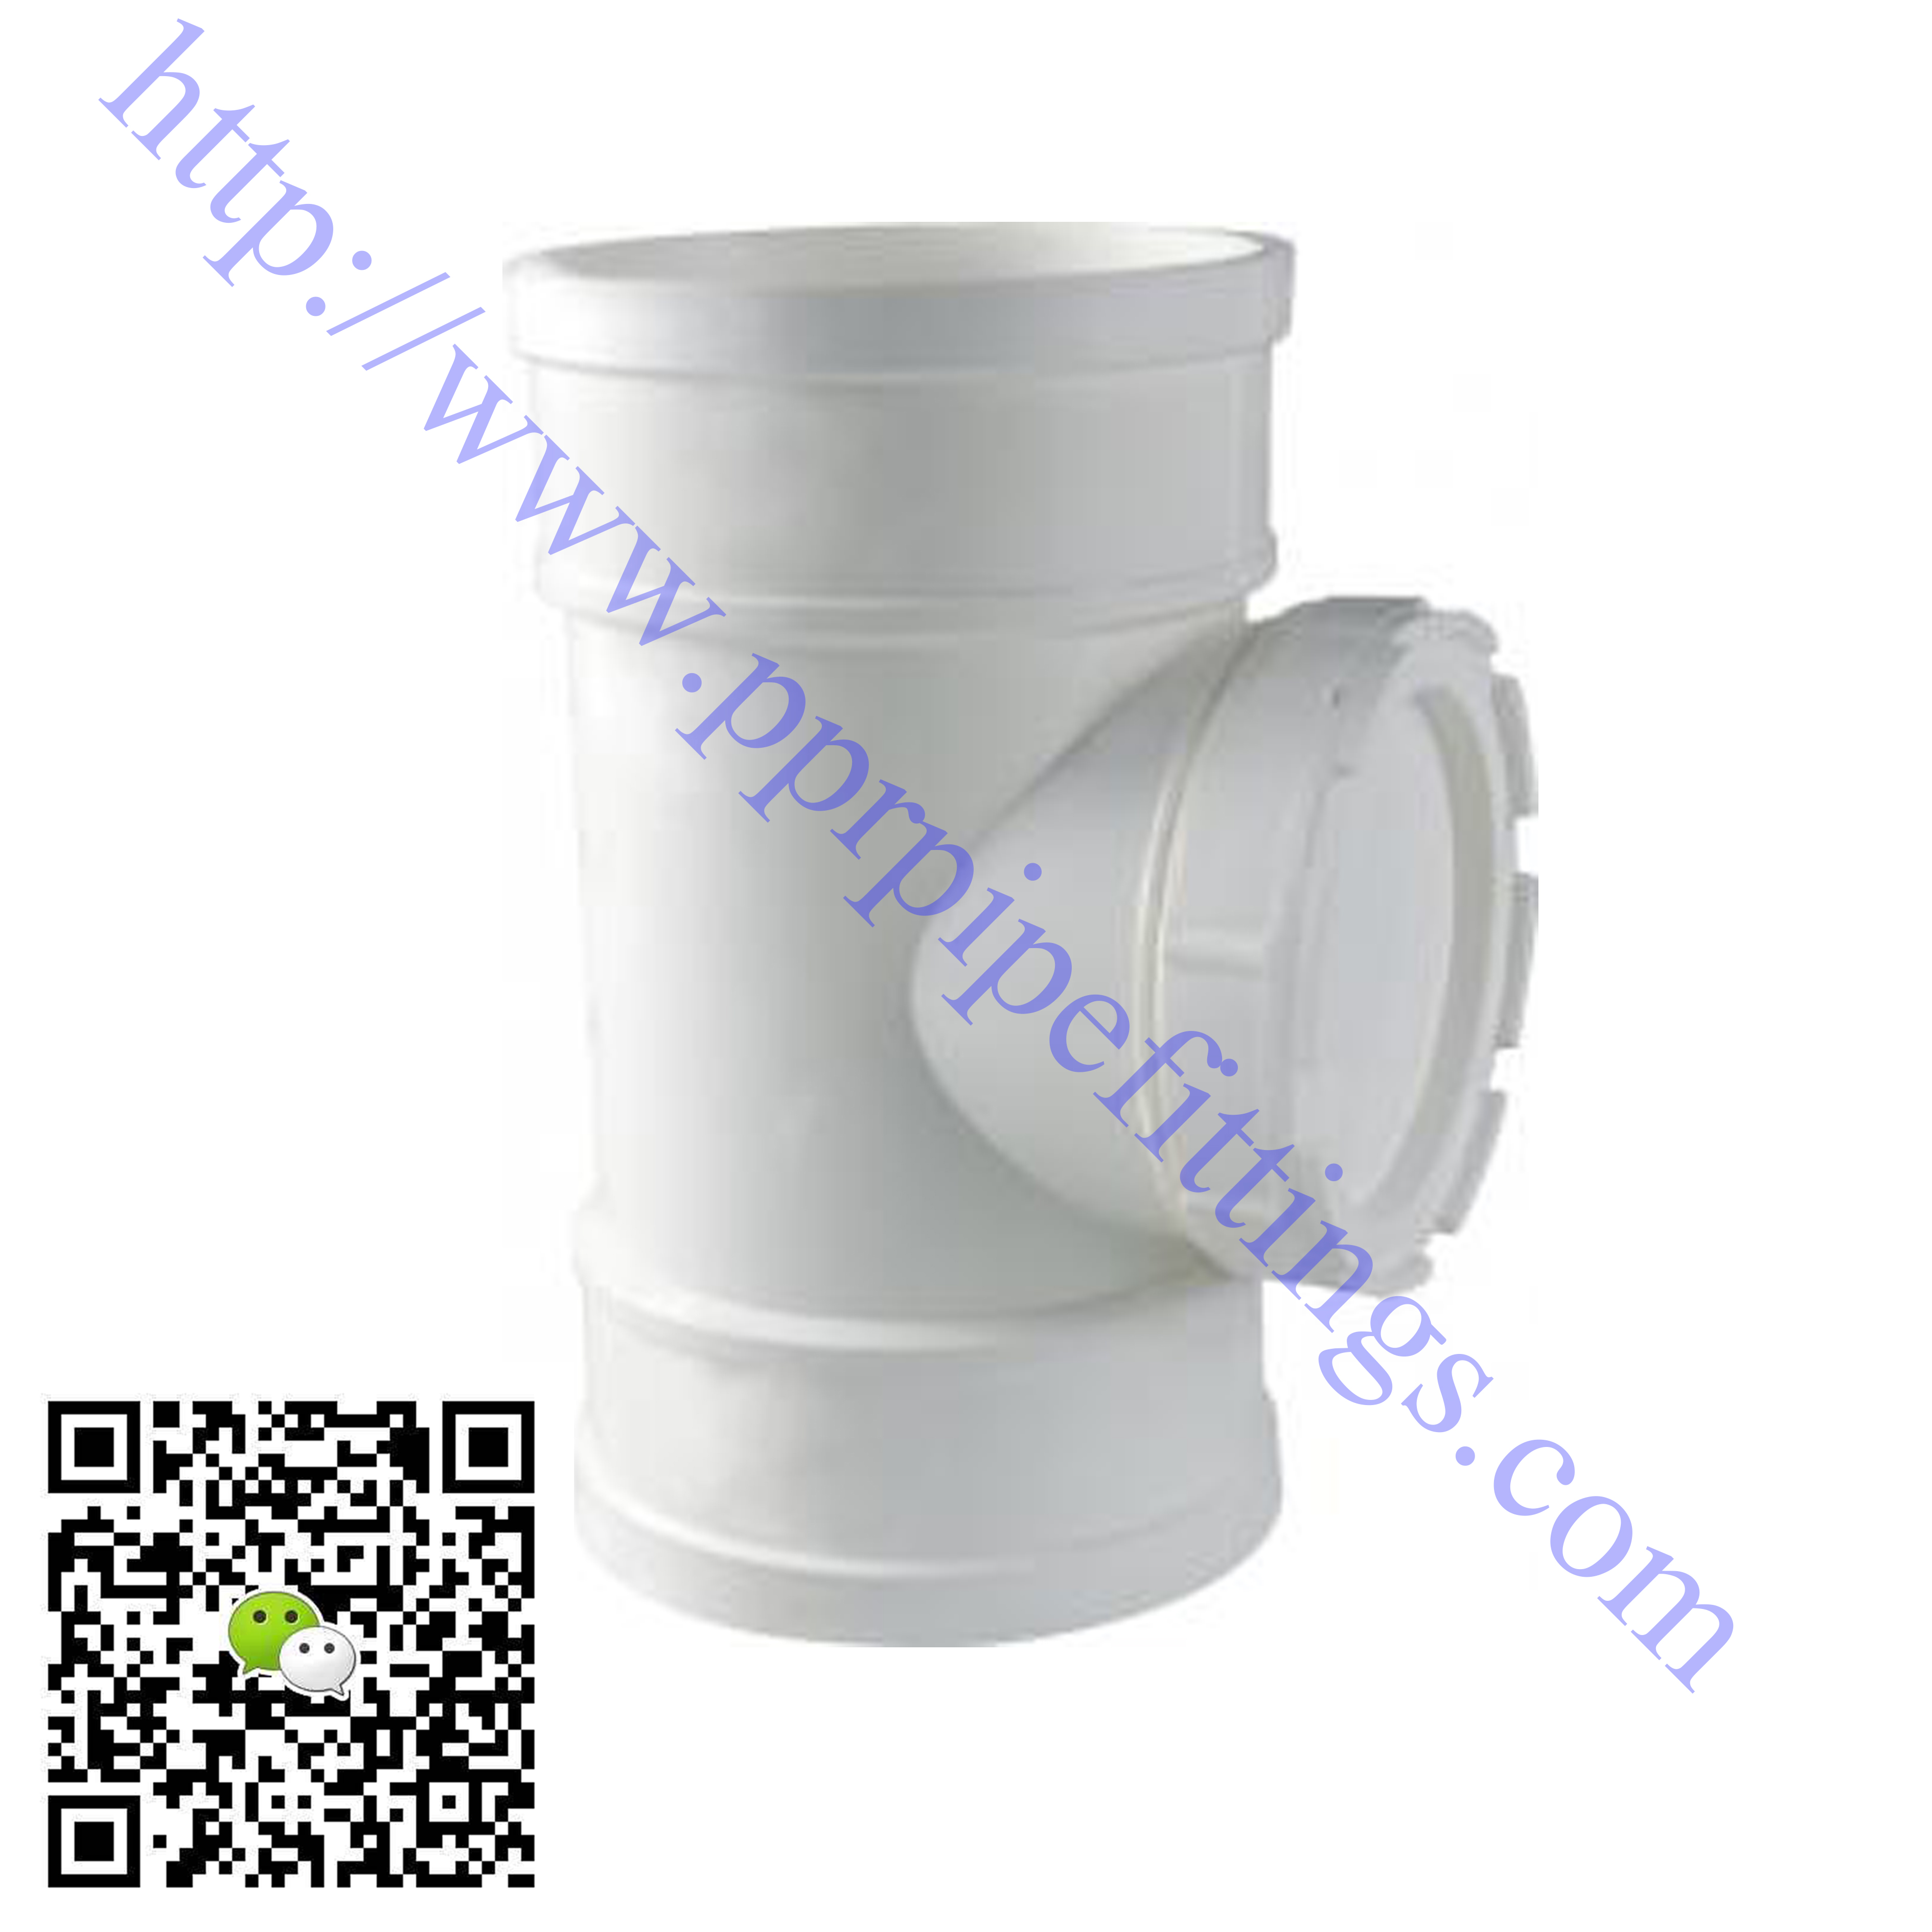 pvc-u pipe fittings inspection pipe